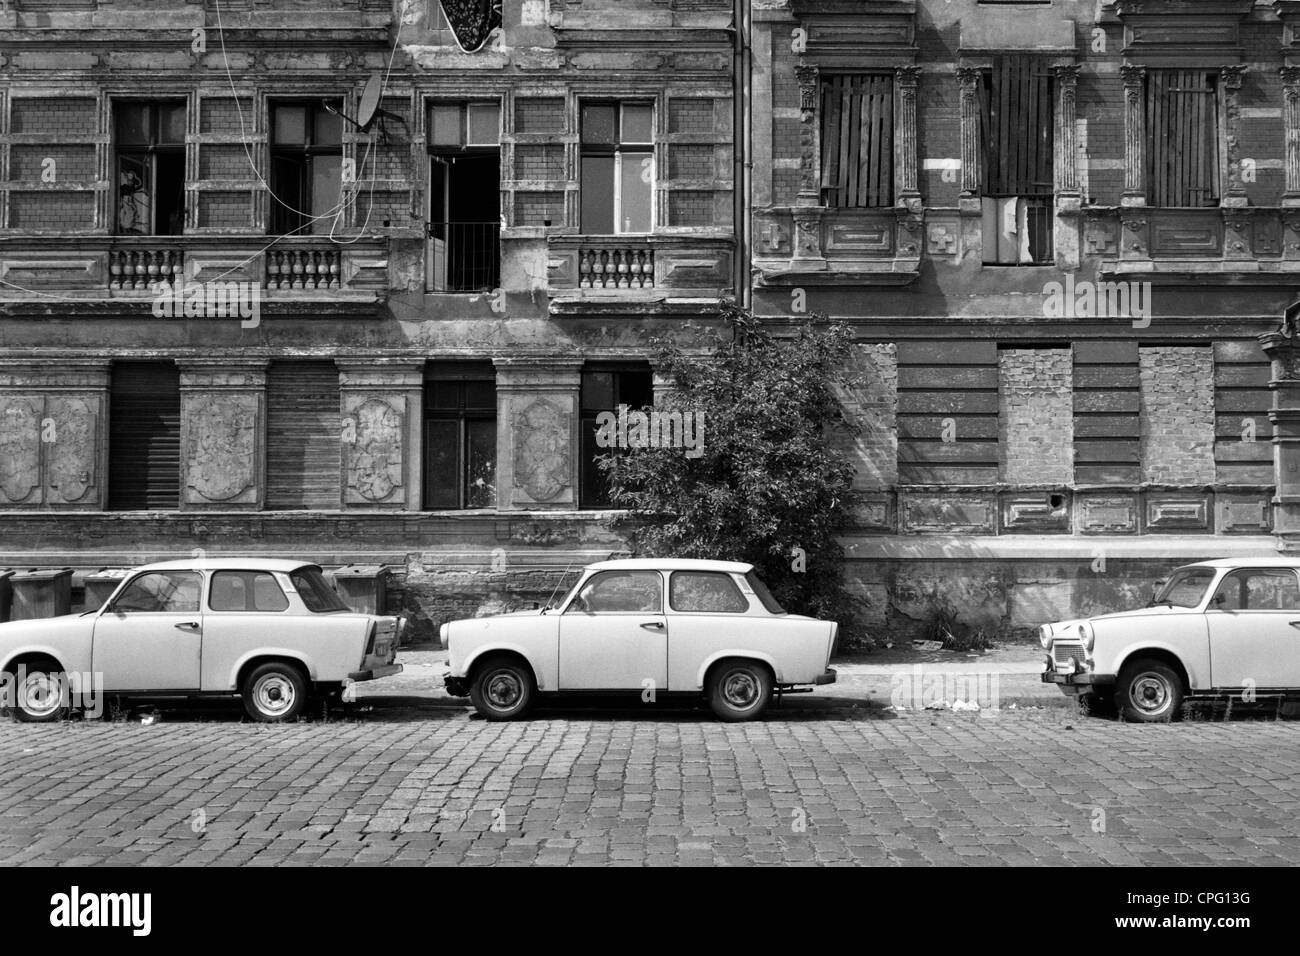 Three Trabants parked in front of a run-down old building, Berlin, Germany - Stock Image